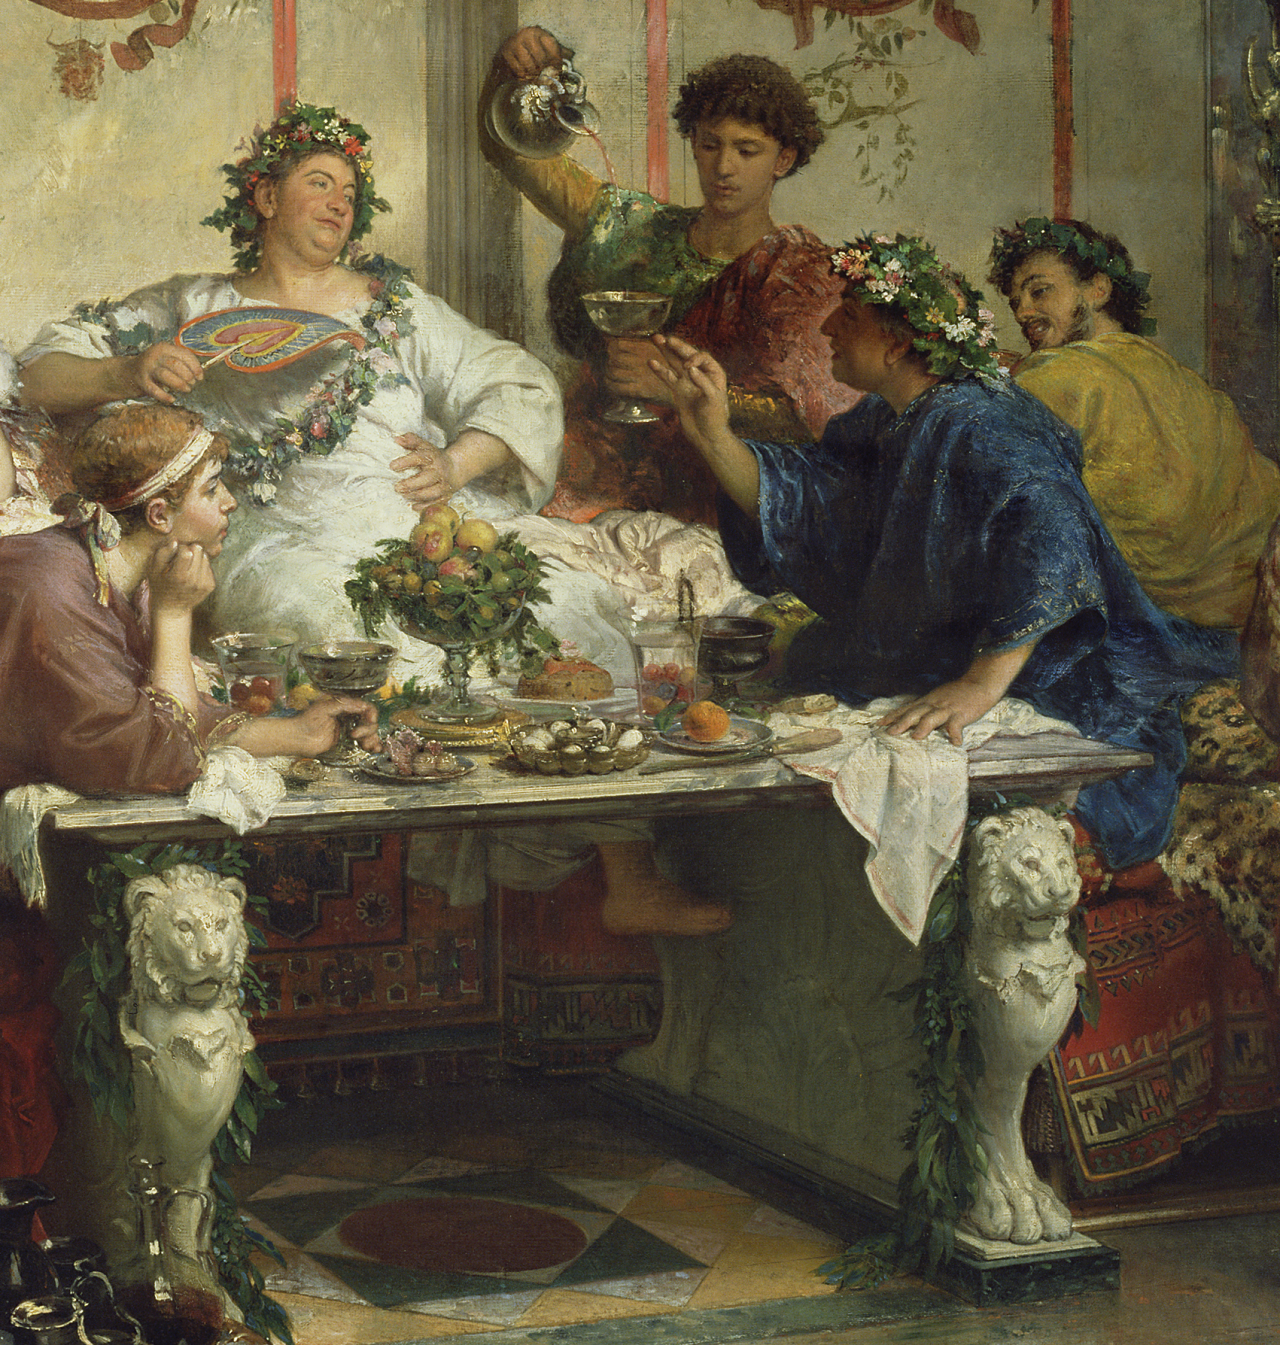 A Roman Feast (and detail) by Roberto Bompiani. Italian, late 19th century